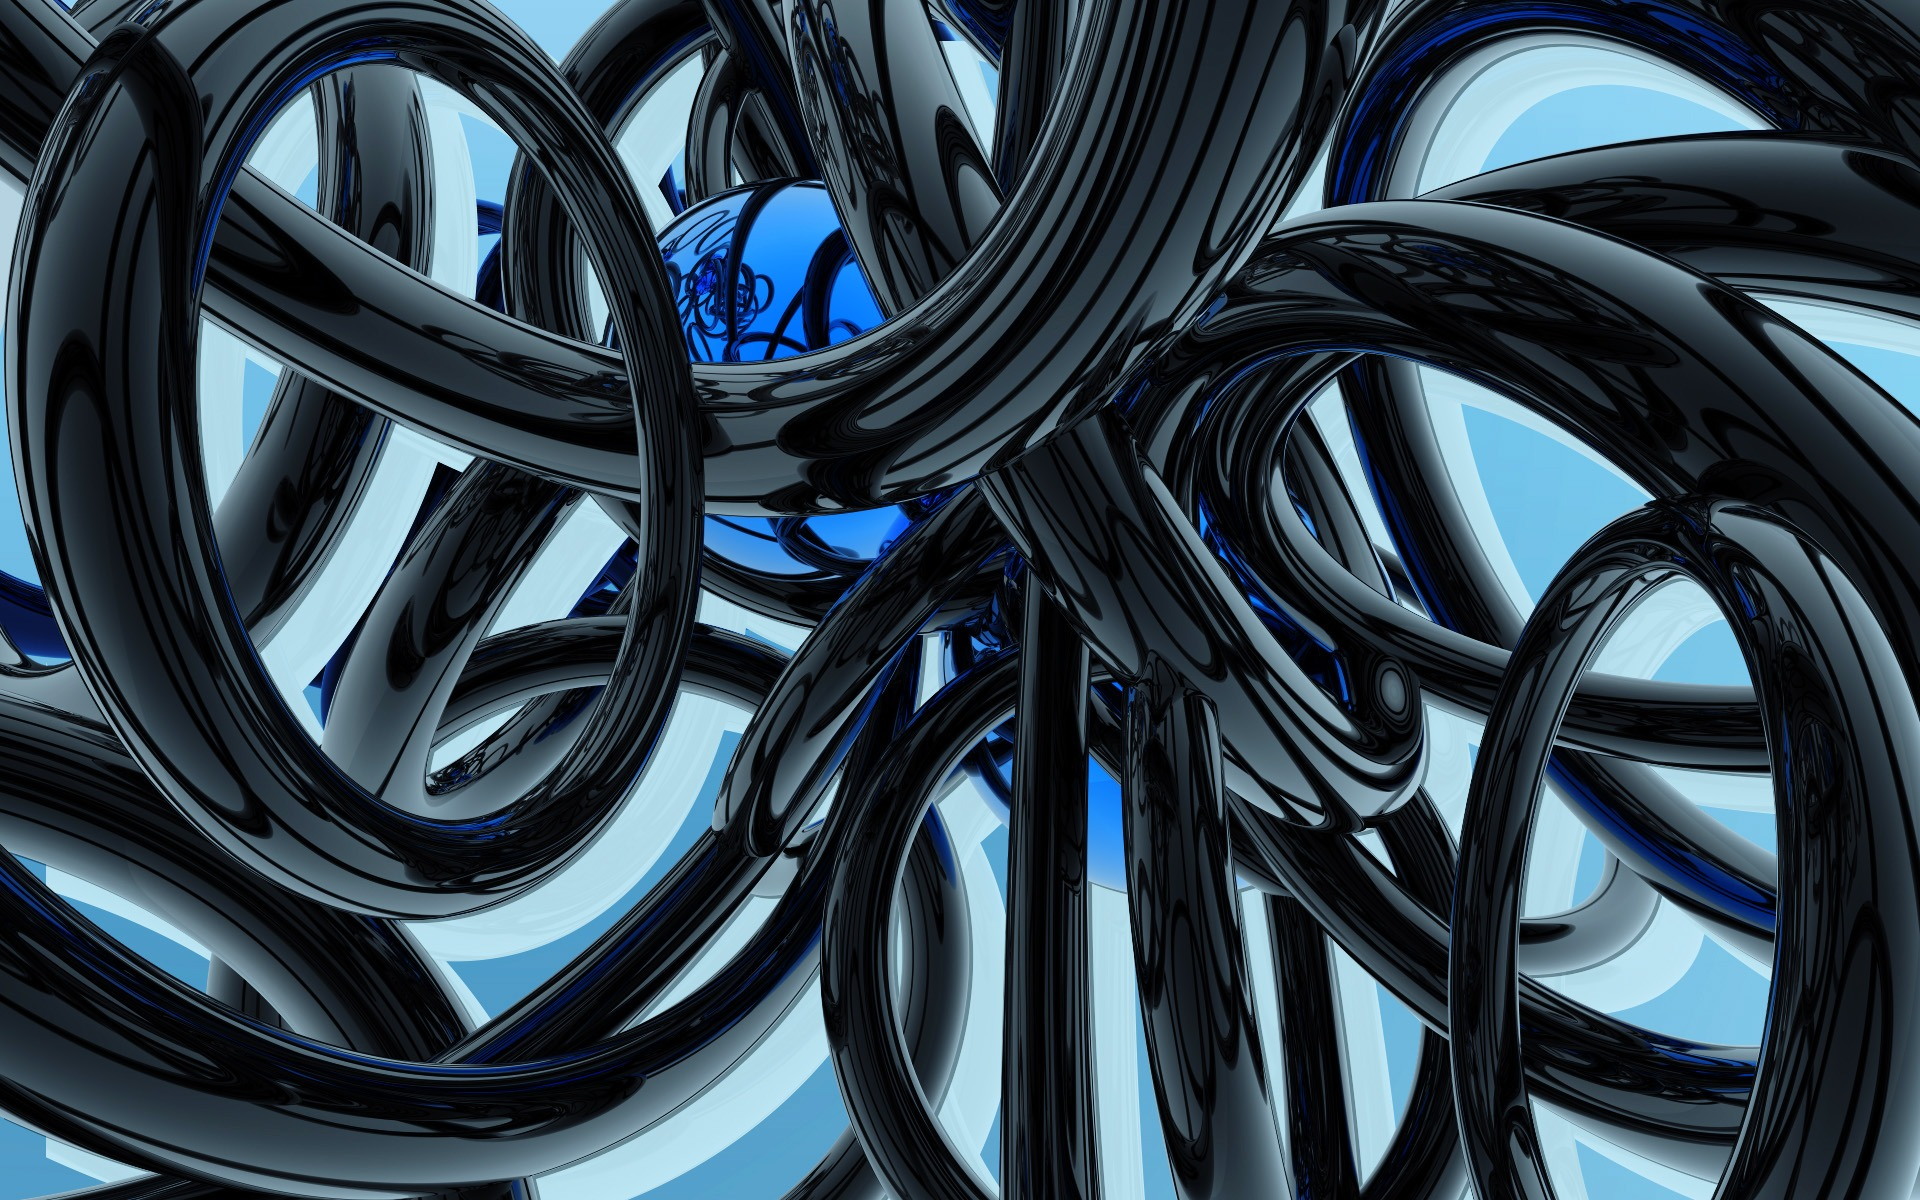 Black And Blue Wallpaper Abstract 3D Wallpapers